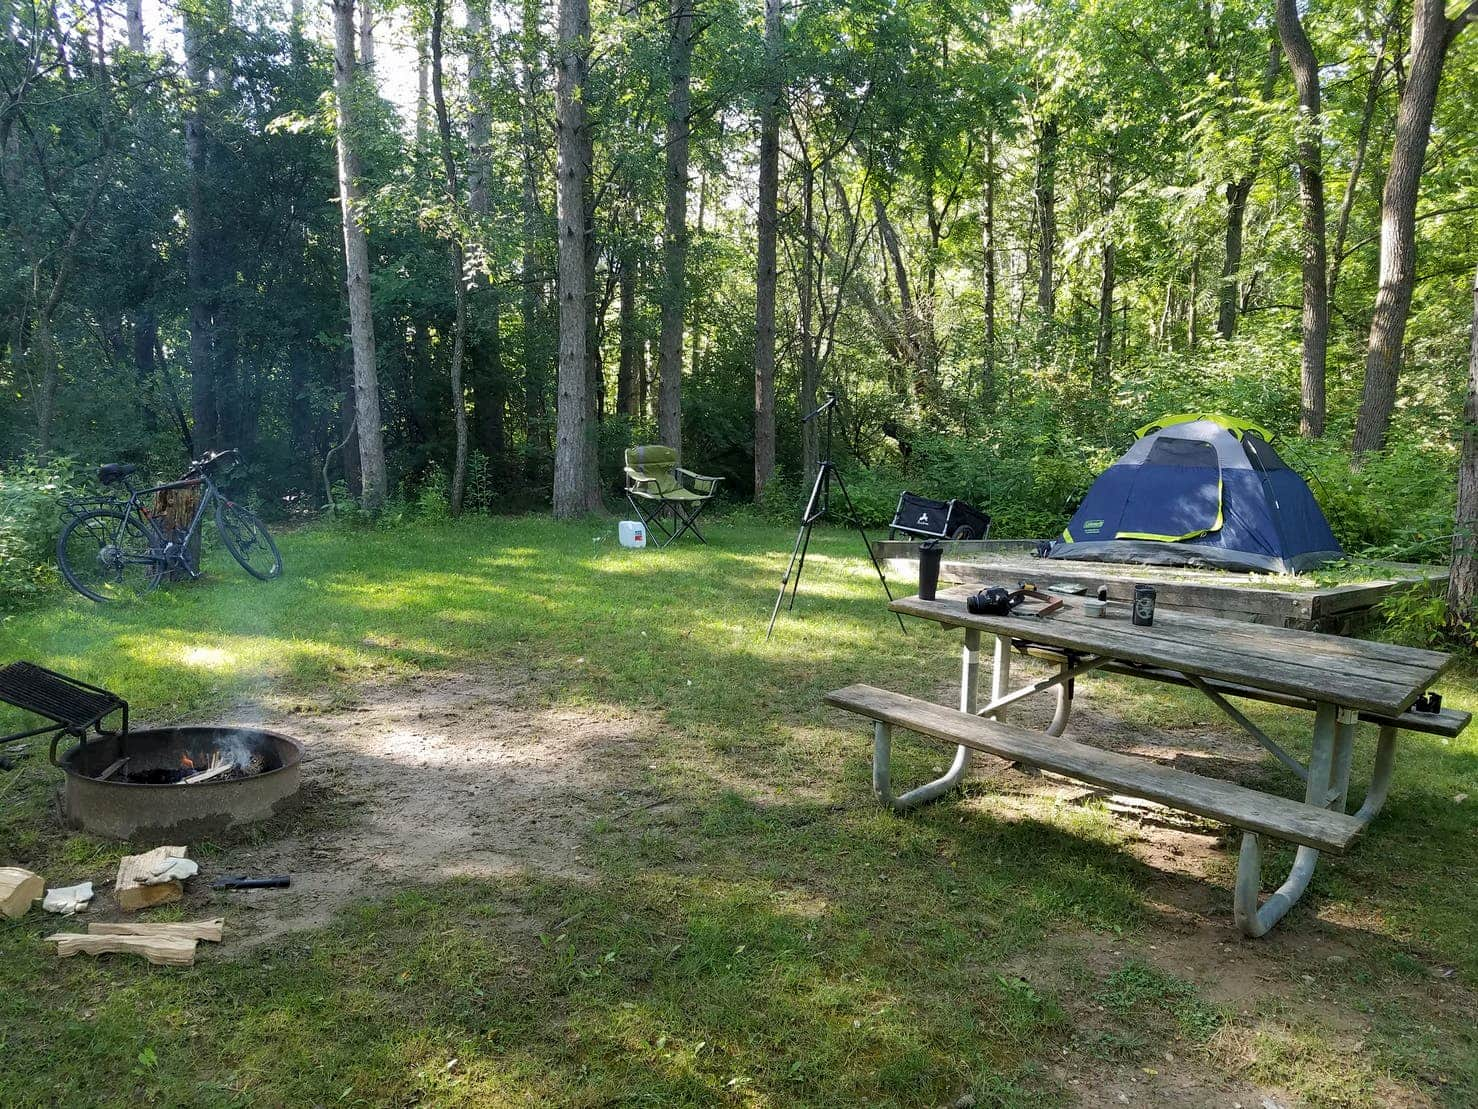 Campsite in wooded are with picnic table, tent, bike, and smoldering fire.